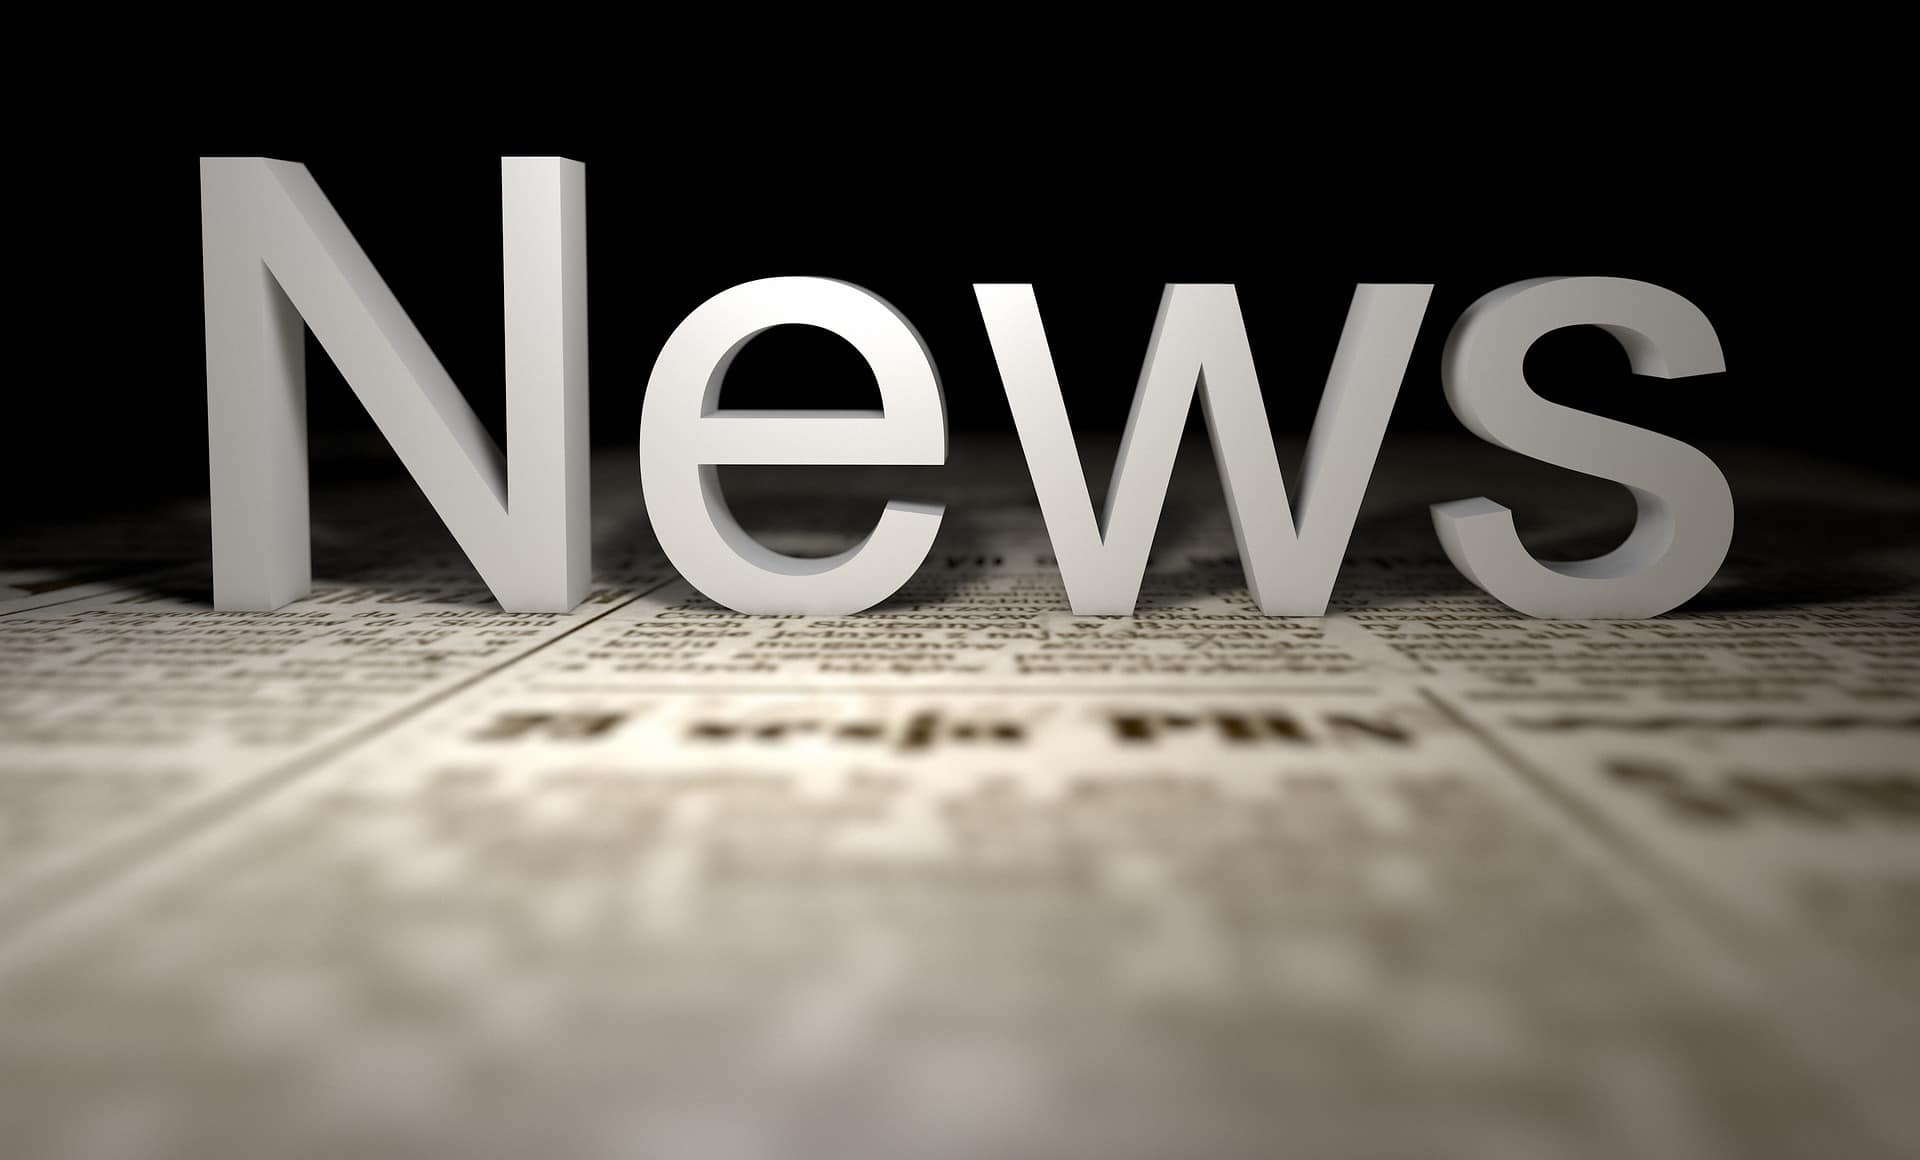 San Luis Obispo County News and City Announcements